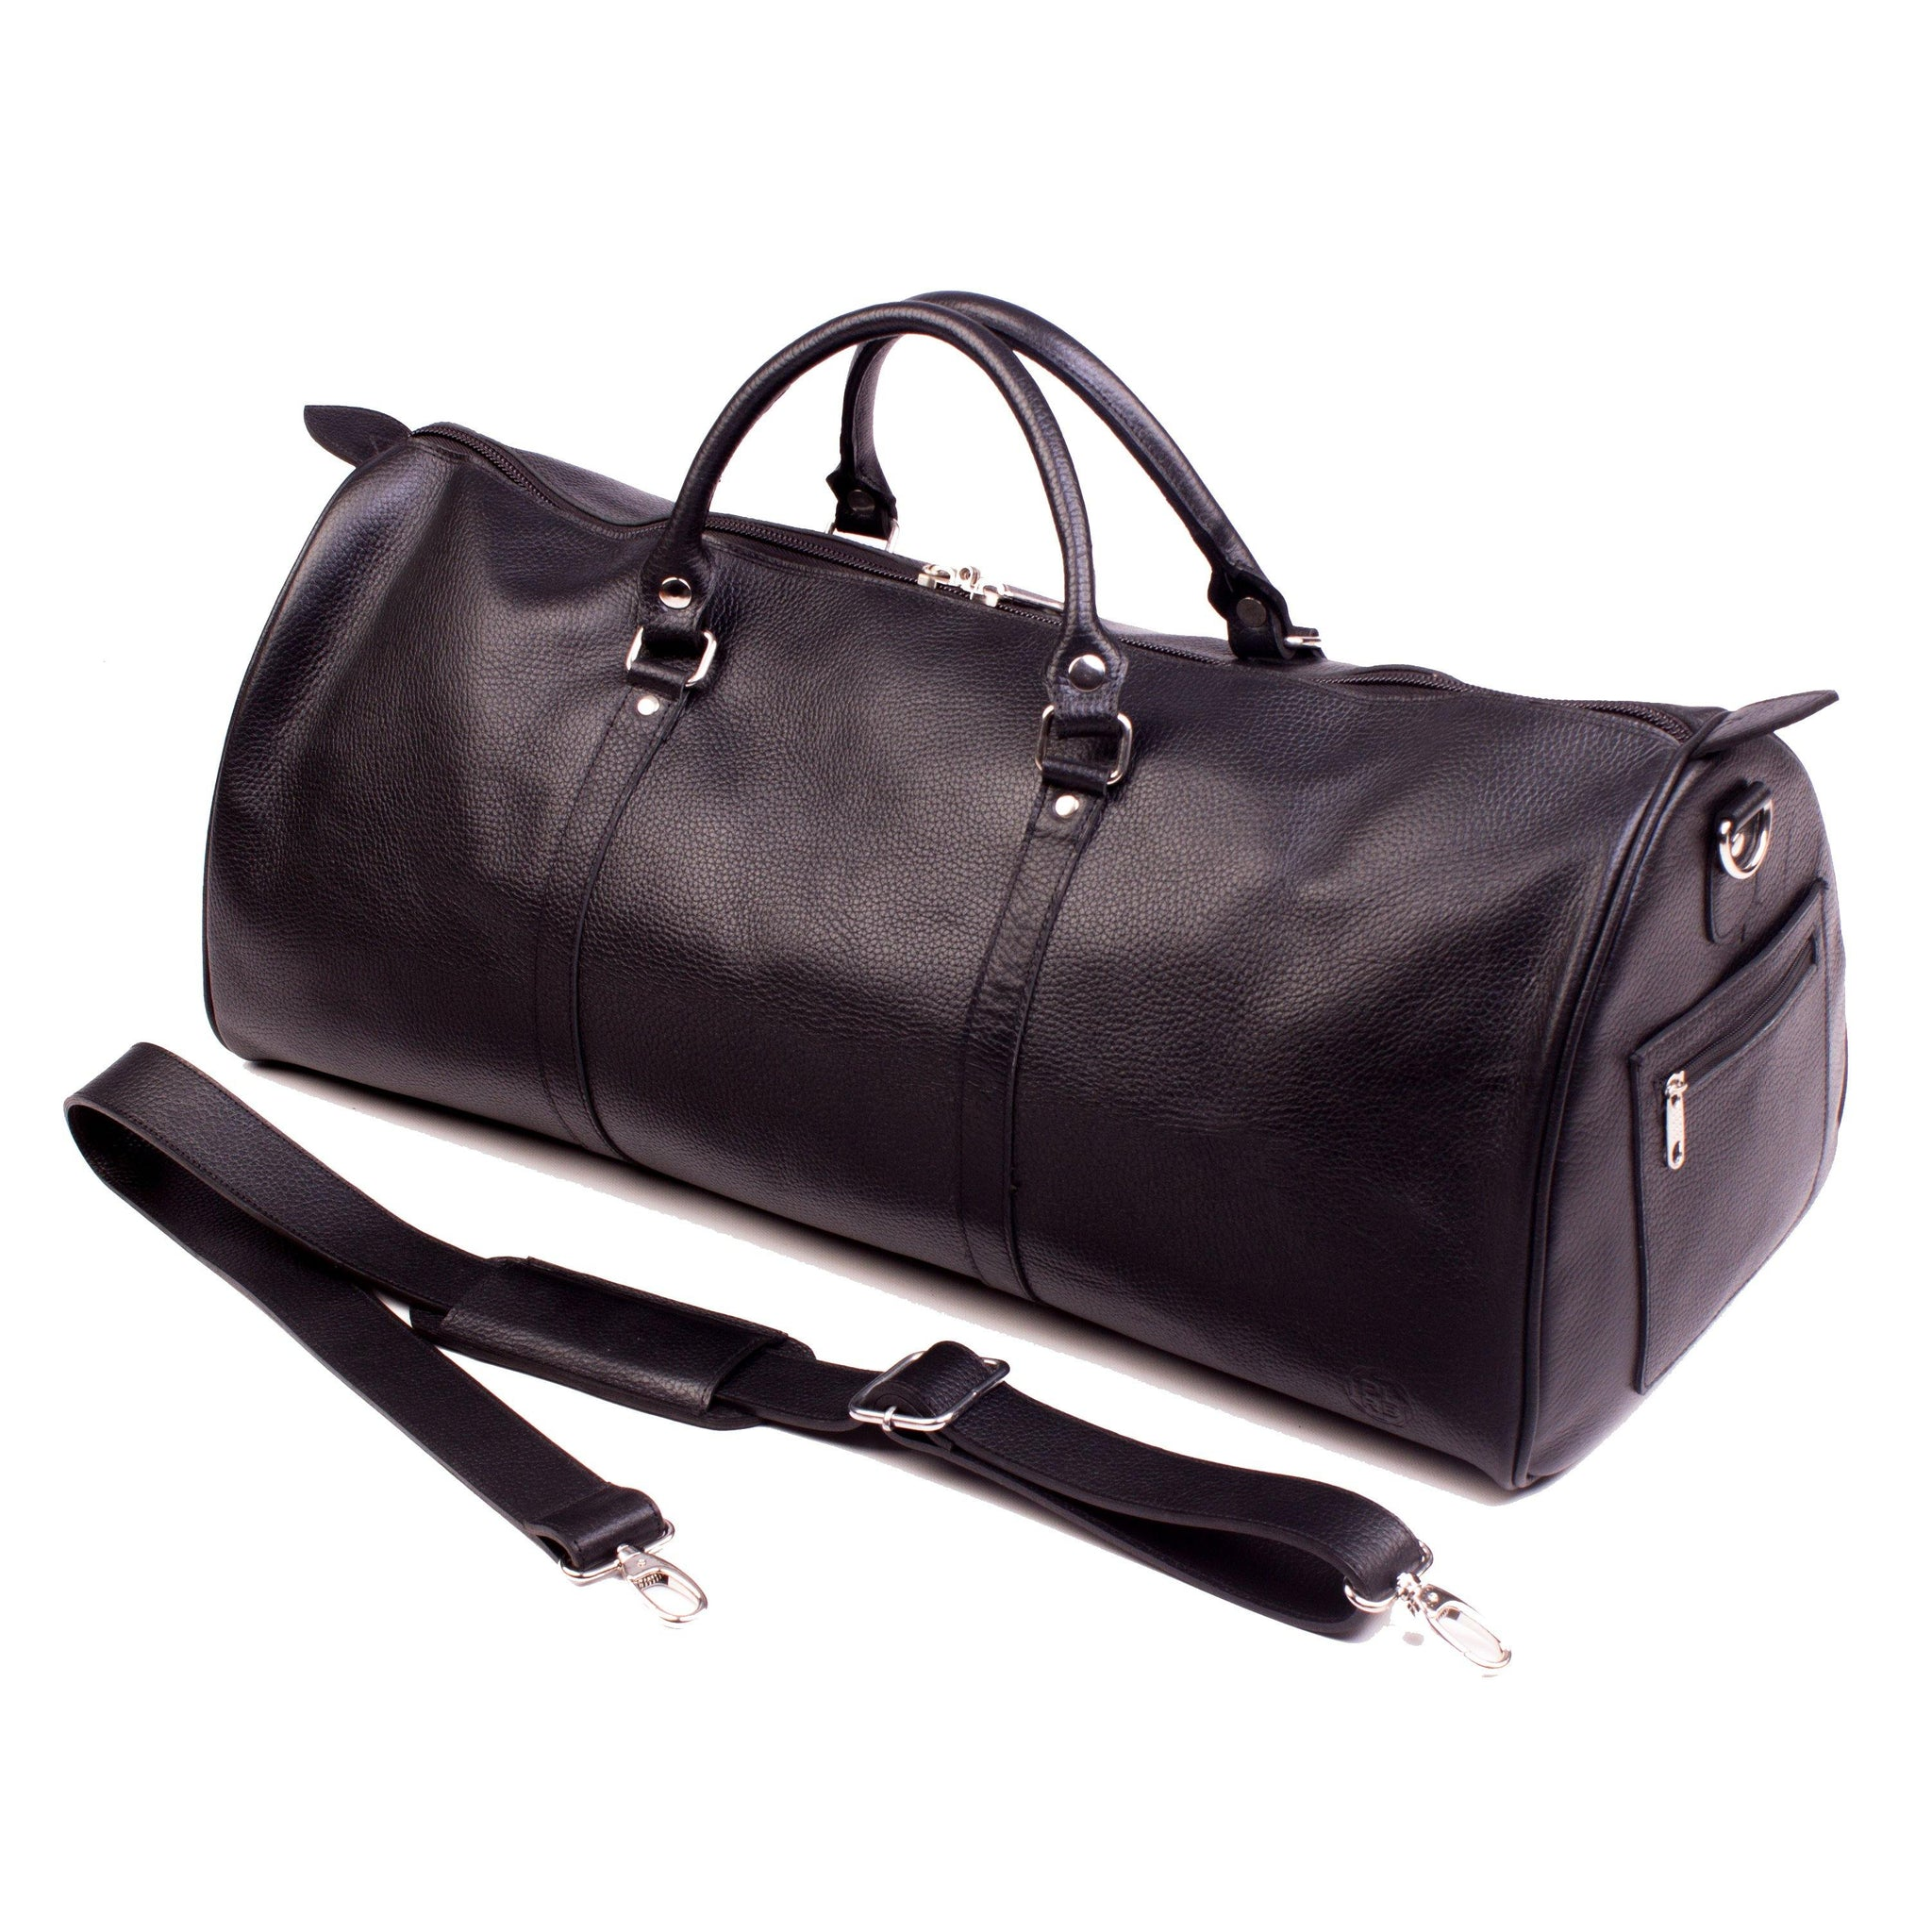 ONE NIGHTER BLACK LEATHER DUFFLE BAG | Poor Little Rich Boy Clothing